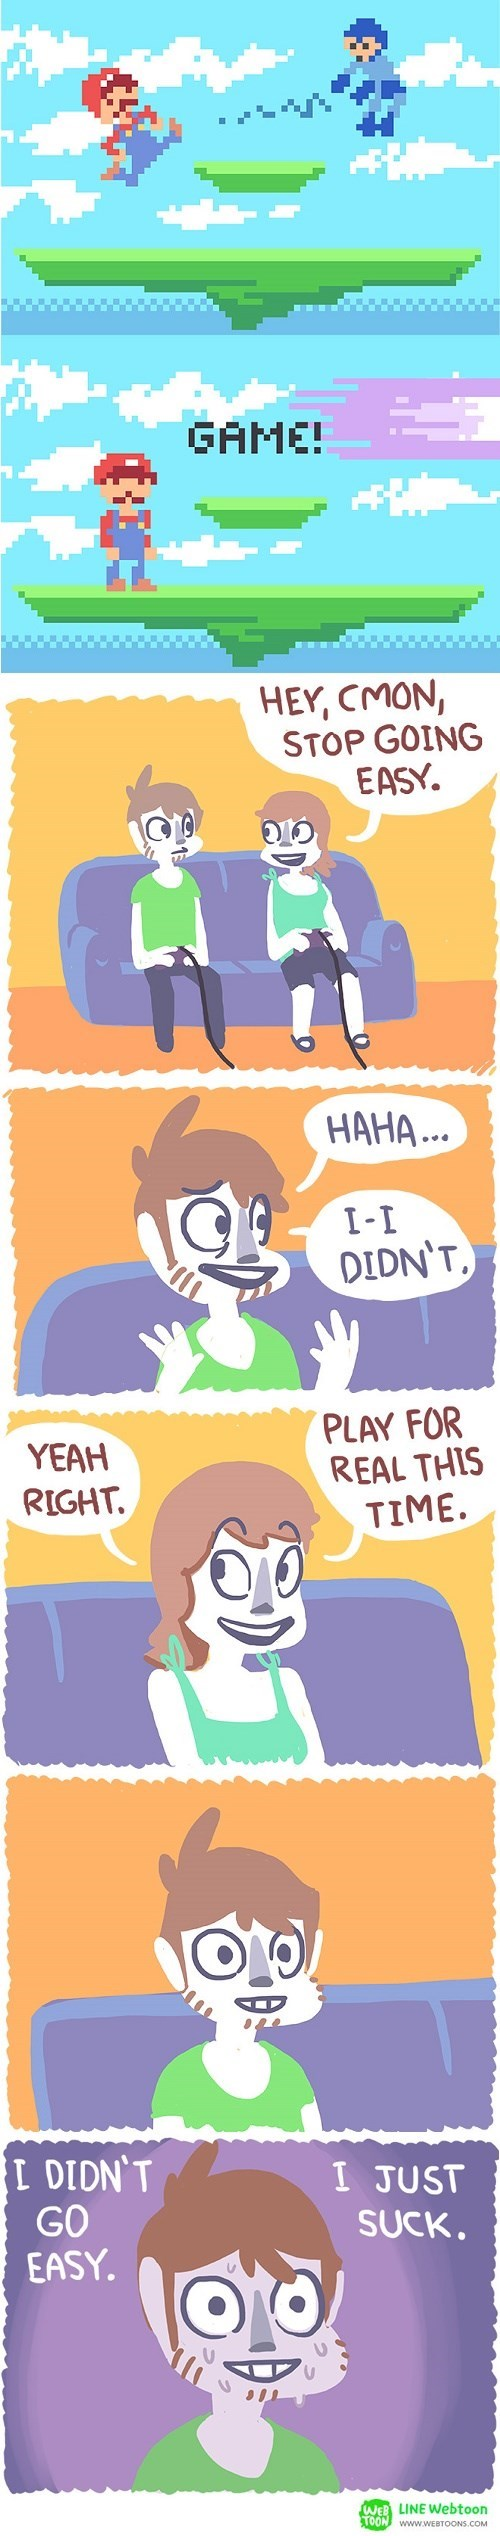 gaming,shame,super smash bros,web comics